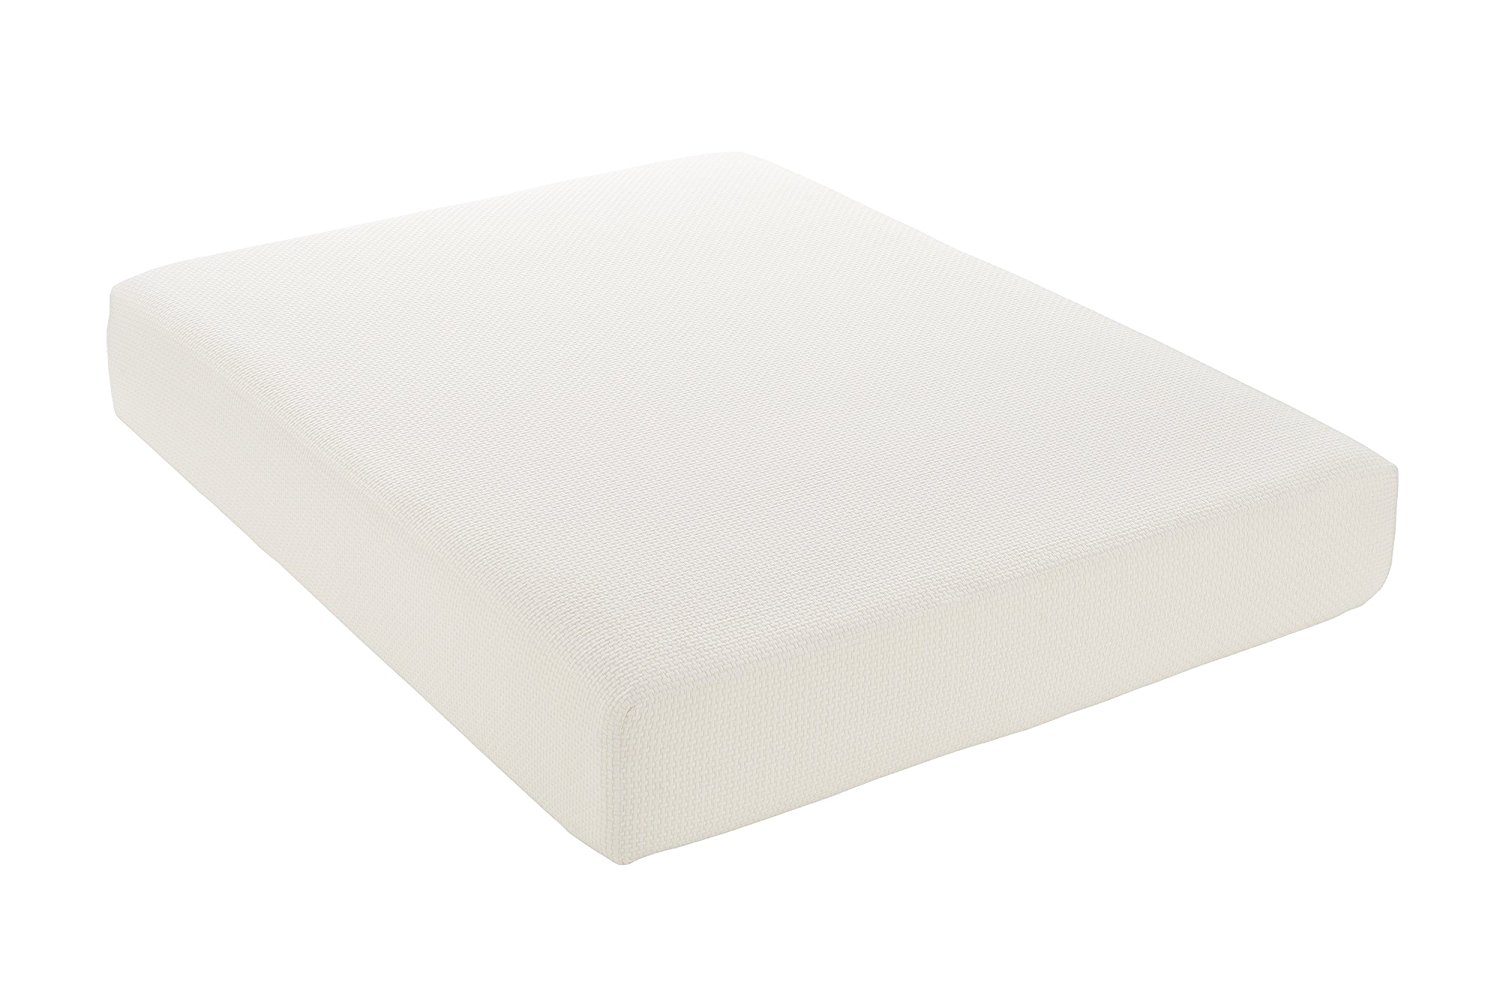 Signature luxury 8 inch memory foam mattress full size discount furniture warehouse Discount foam mattress